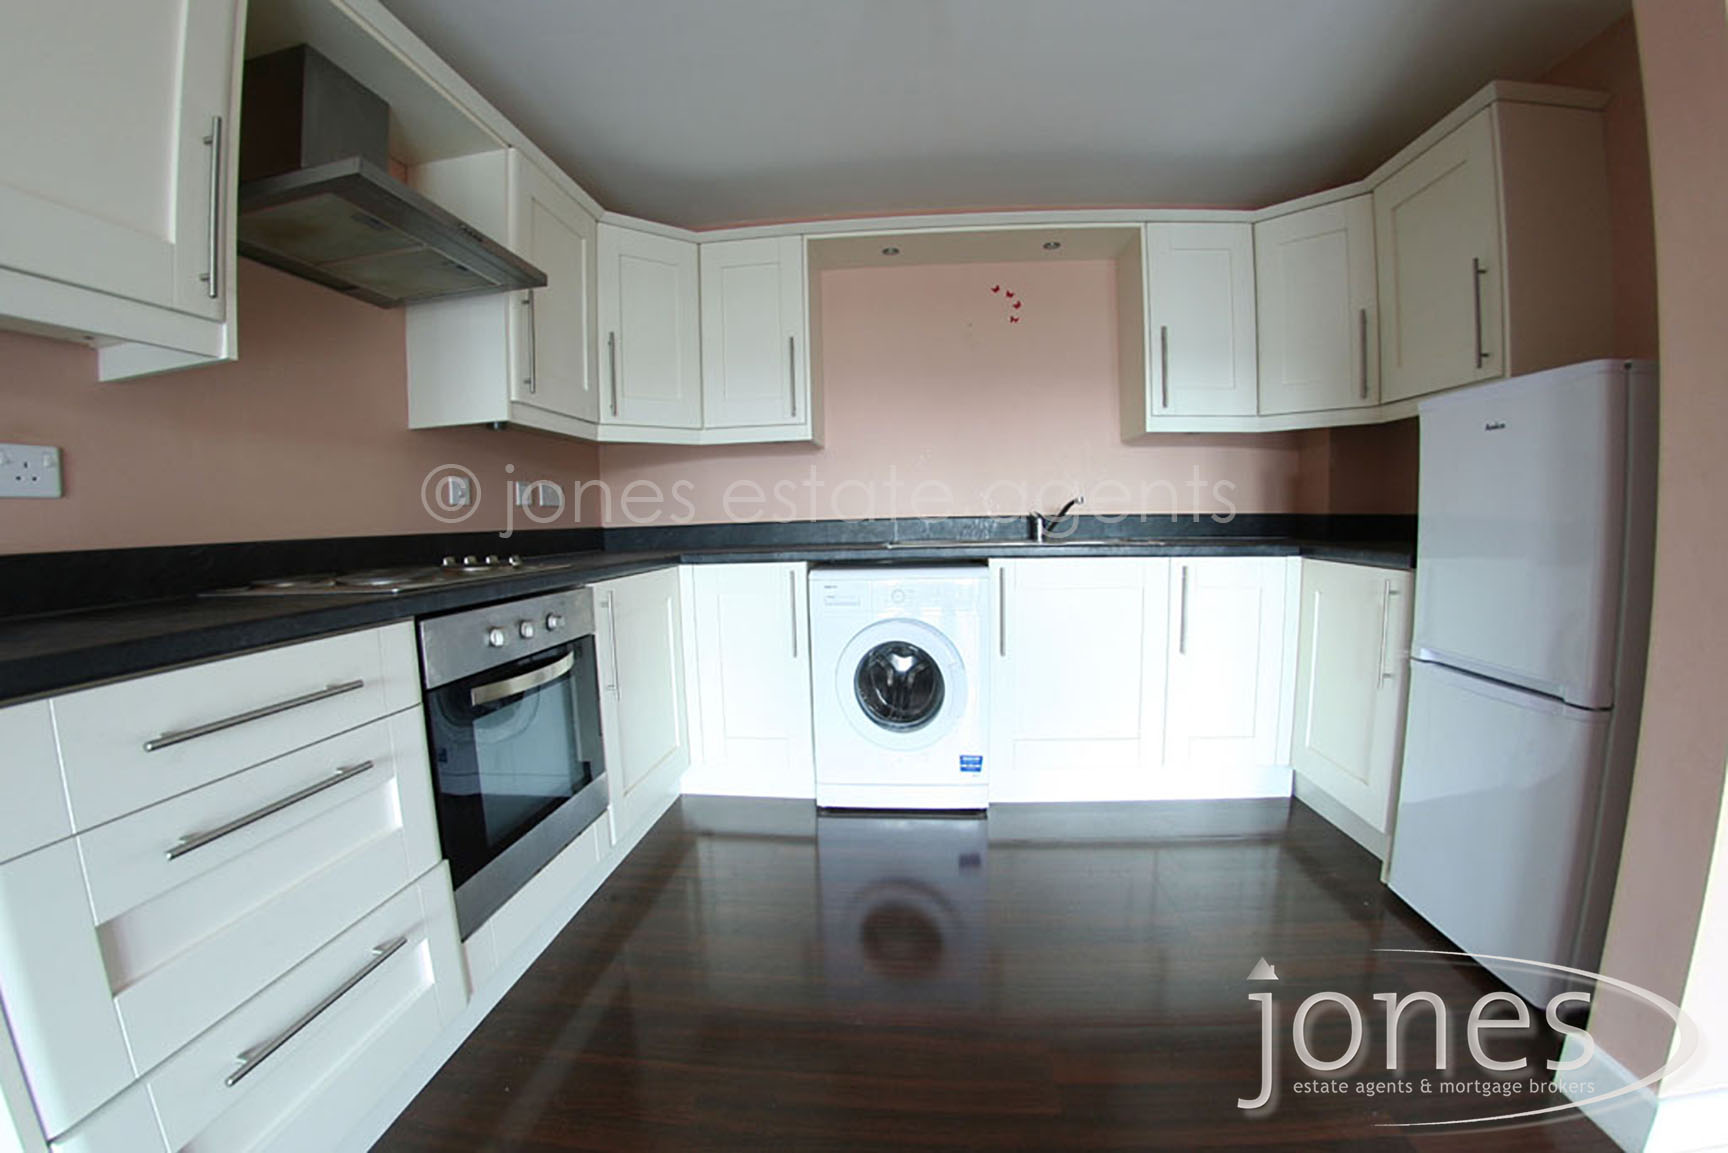 Home for Sale Let - Photo 03 York Apartments, Thornaby, Stockton on Tees,TS17 0AS